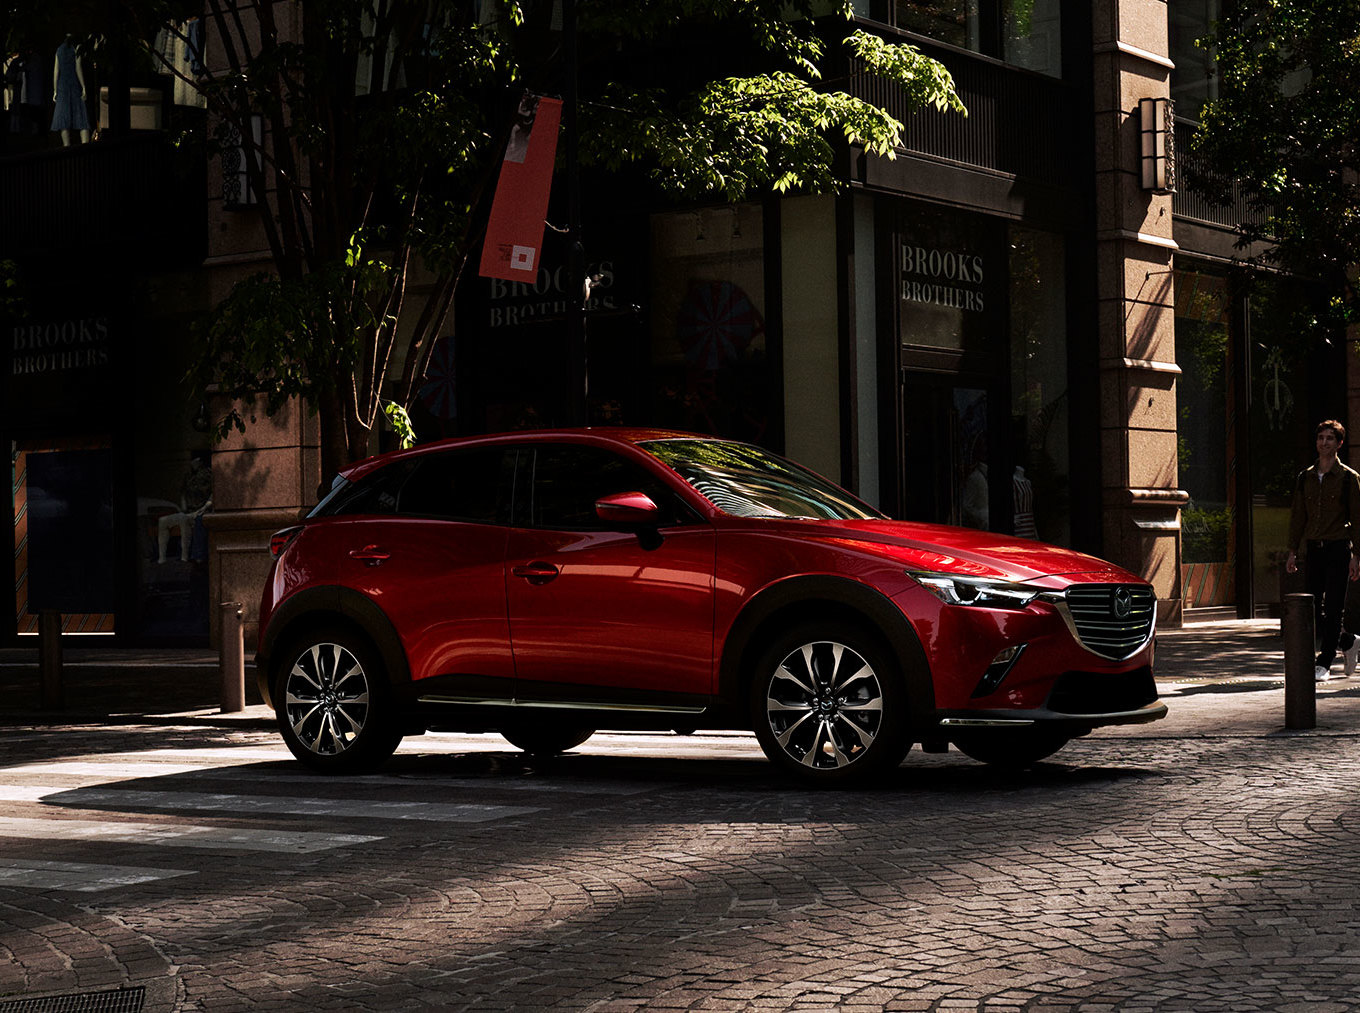 Certified Pre-Owned Mazda Vehicles for Sale near Garden City, NY